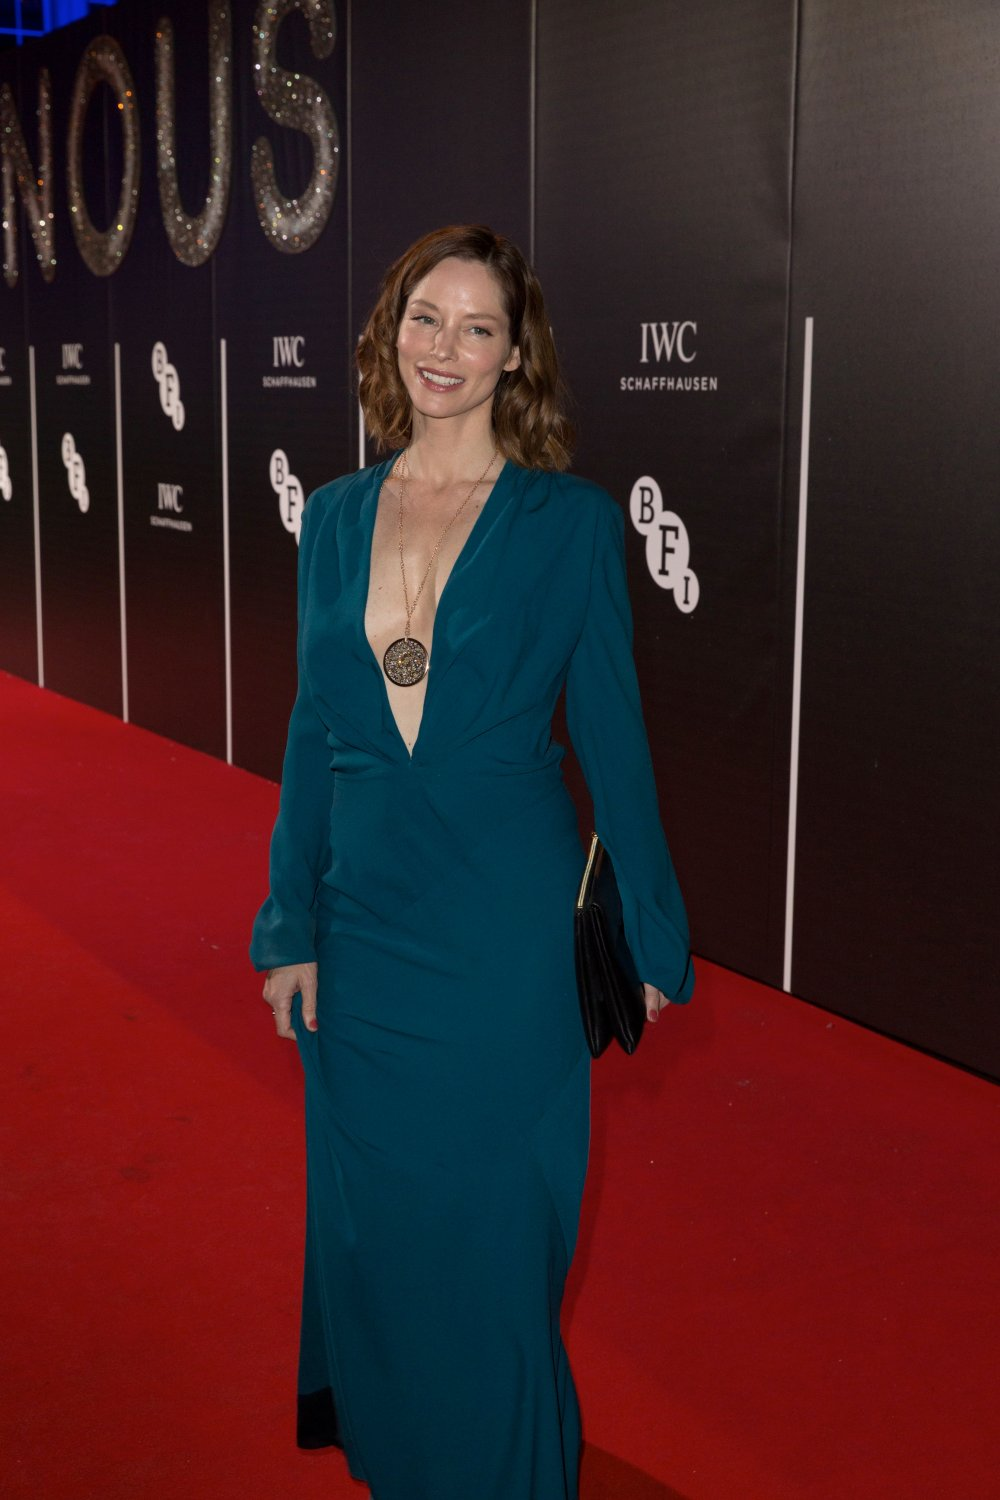 Sienna Guillory attends the BFI LUMINOUS gala 2015